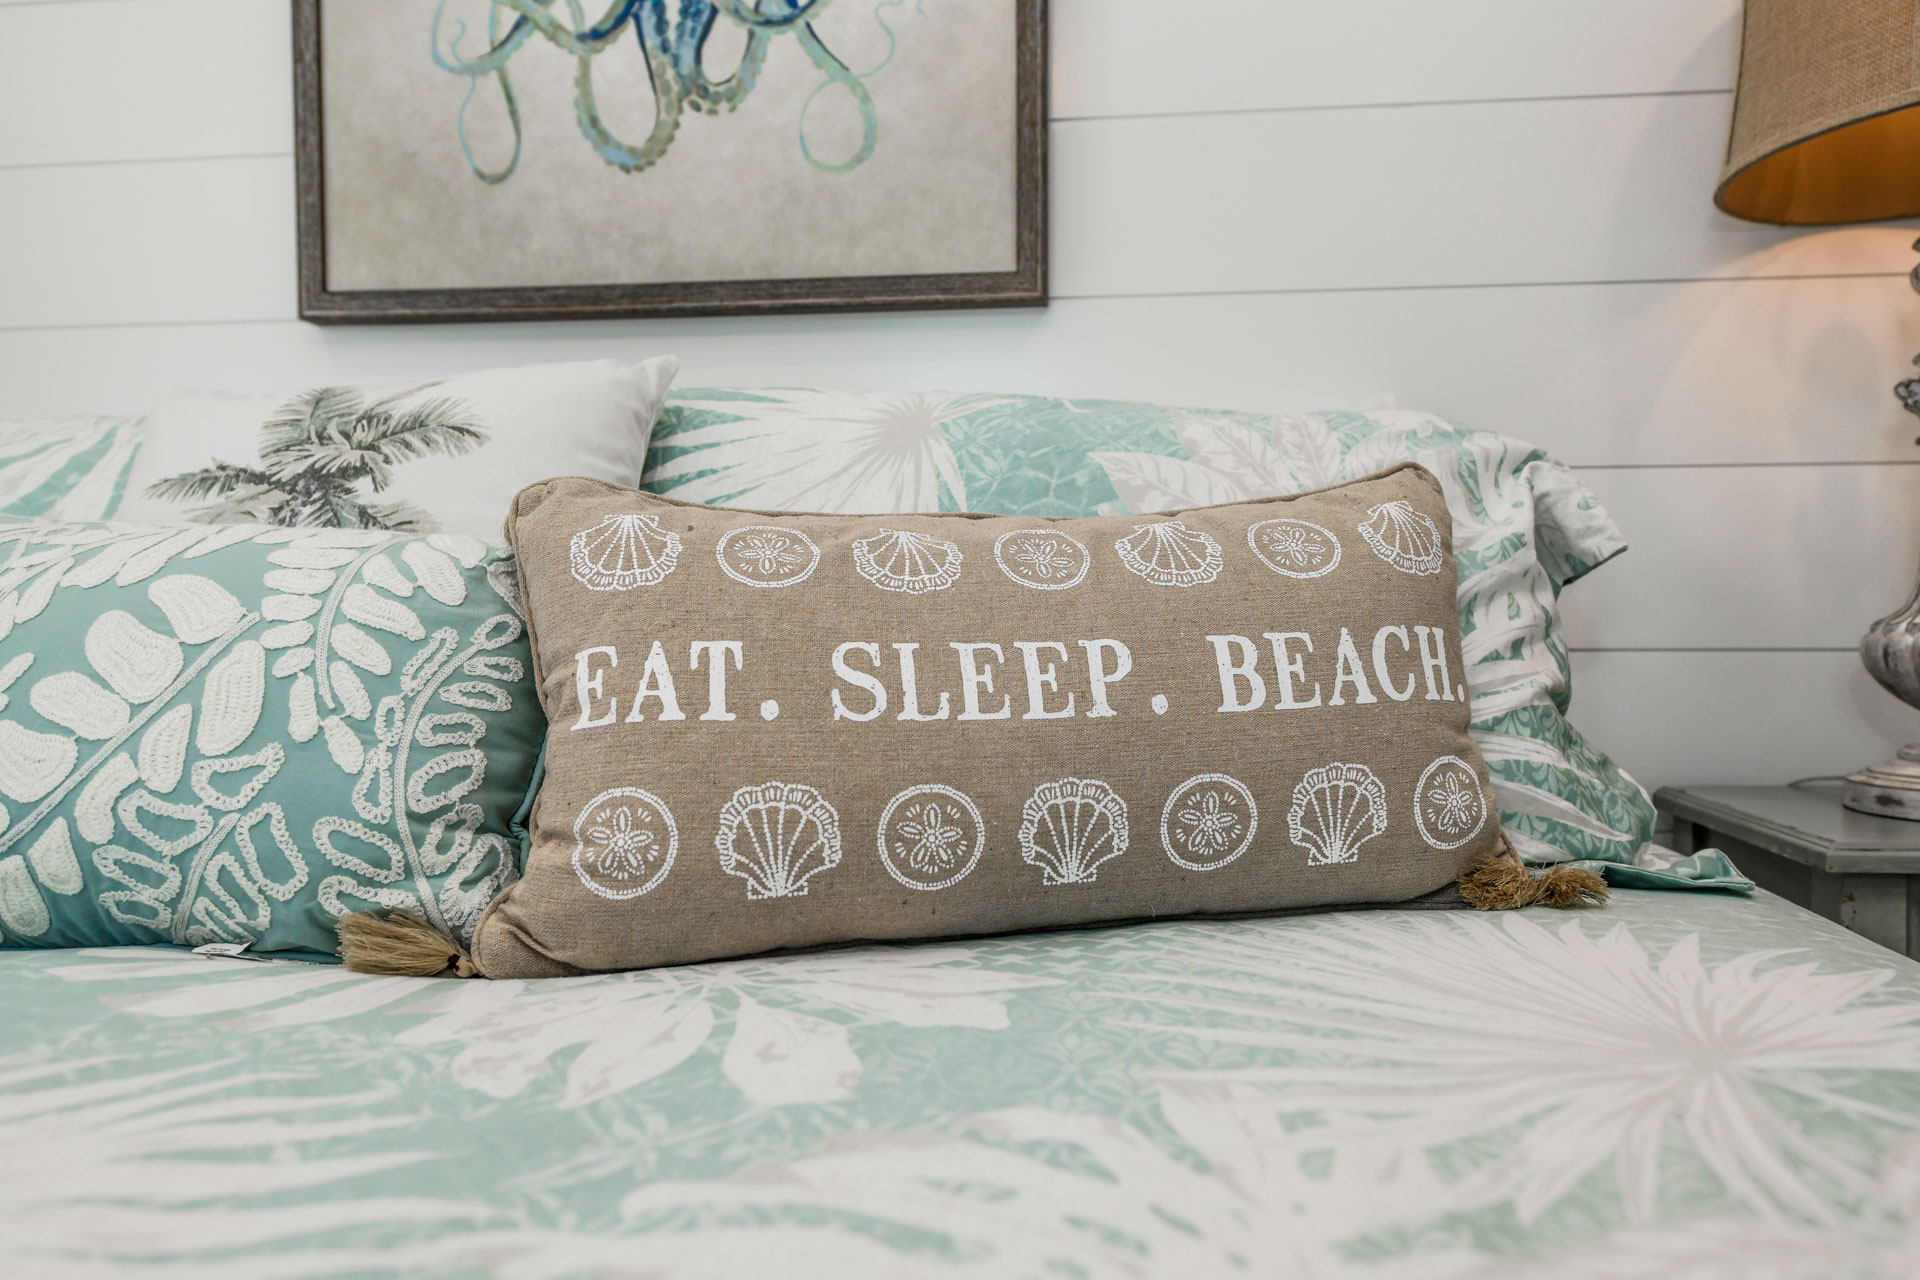 Bedroom 2- Eat, Sleep, Beach while in comfort